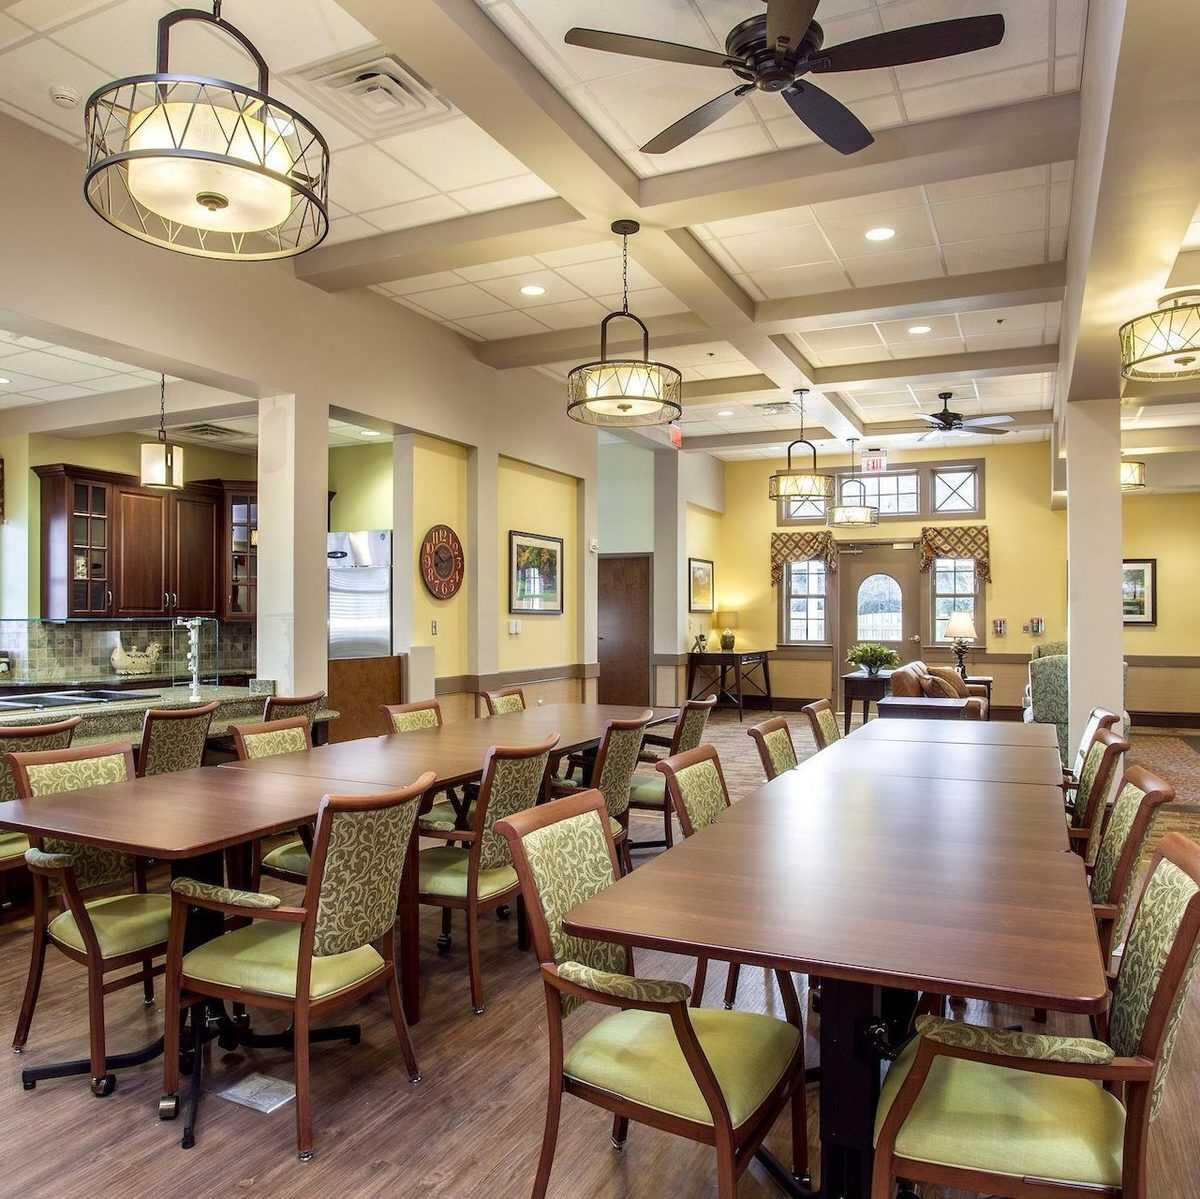 Photo of Champions Assisted Living, Assisted Living, Wilmington, NC 1